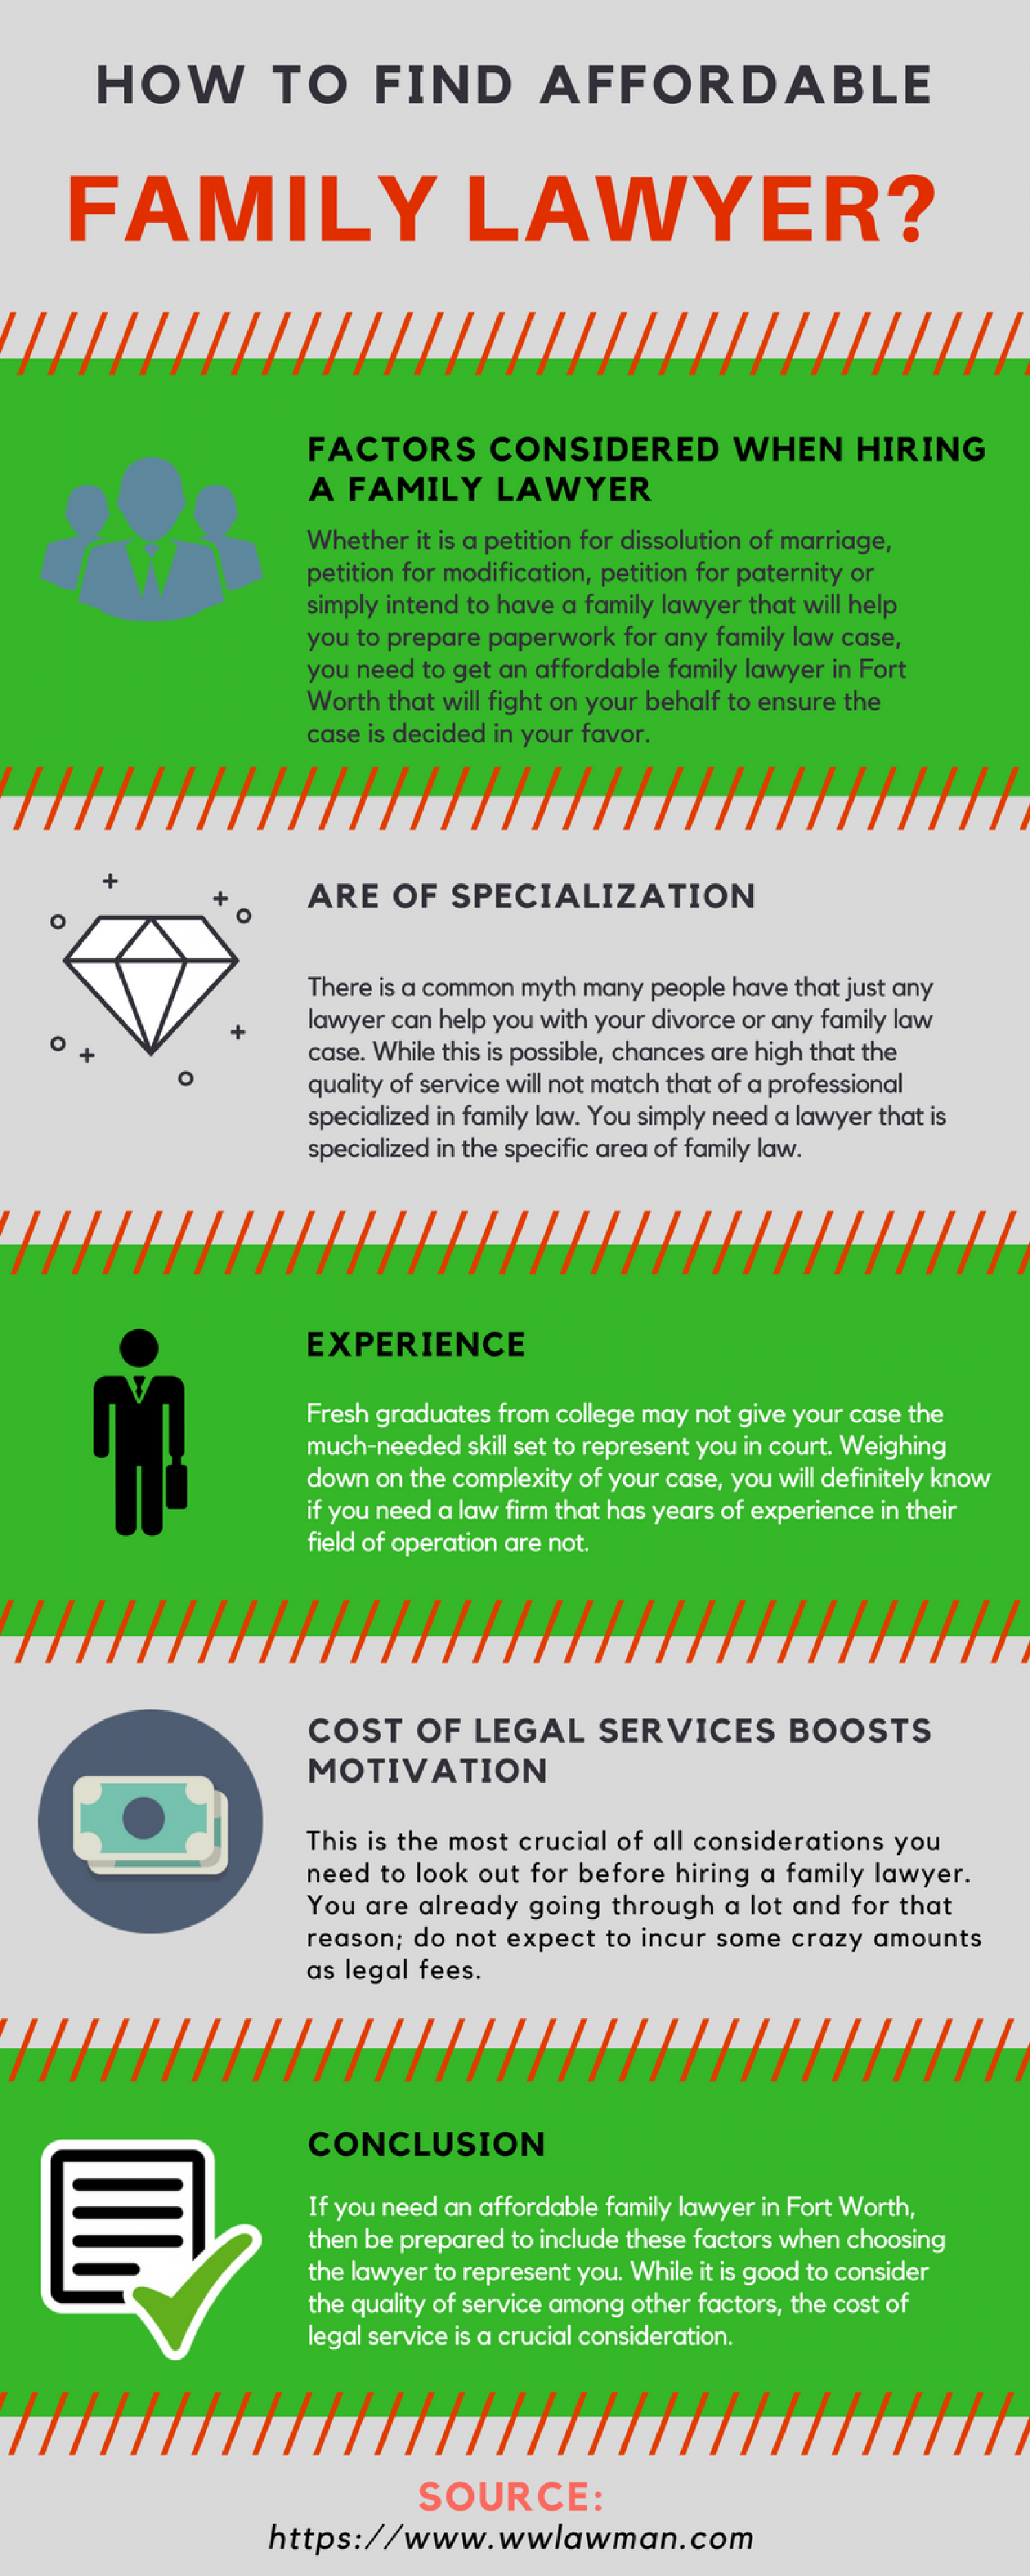 Affordable Family Lawyer In Fort Worth Infographic